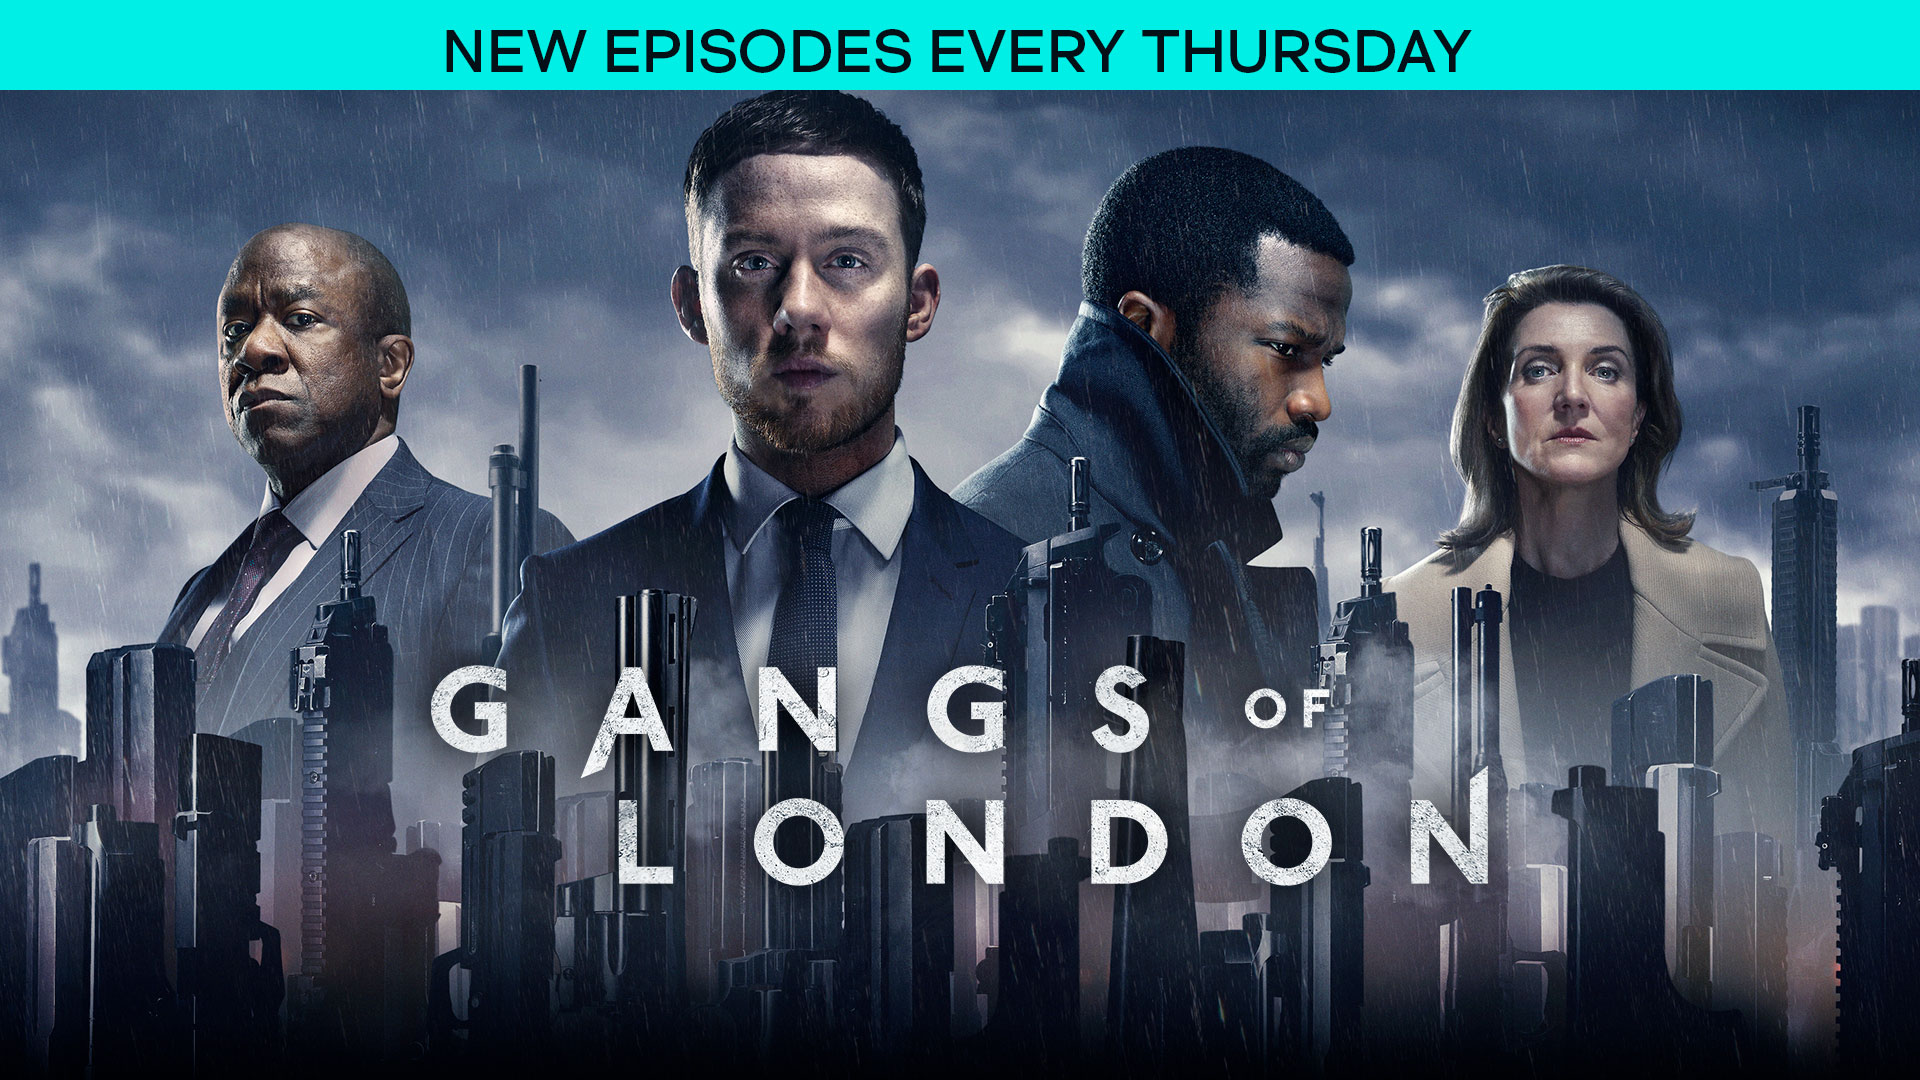 Gangs of London, Season 1